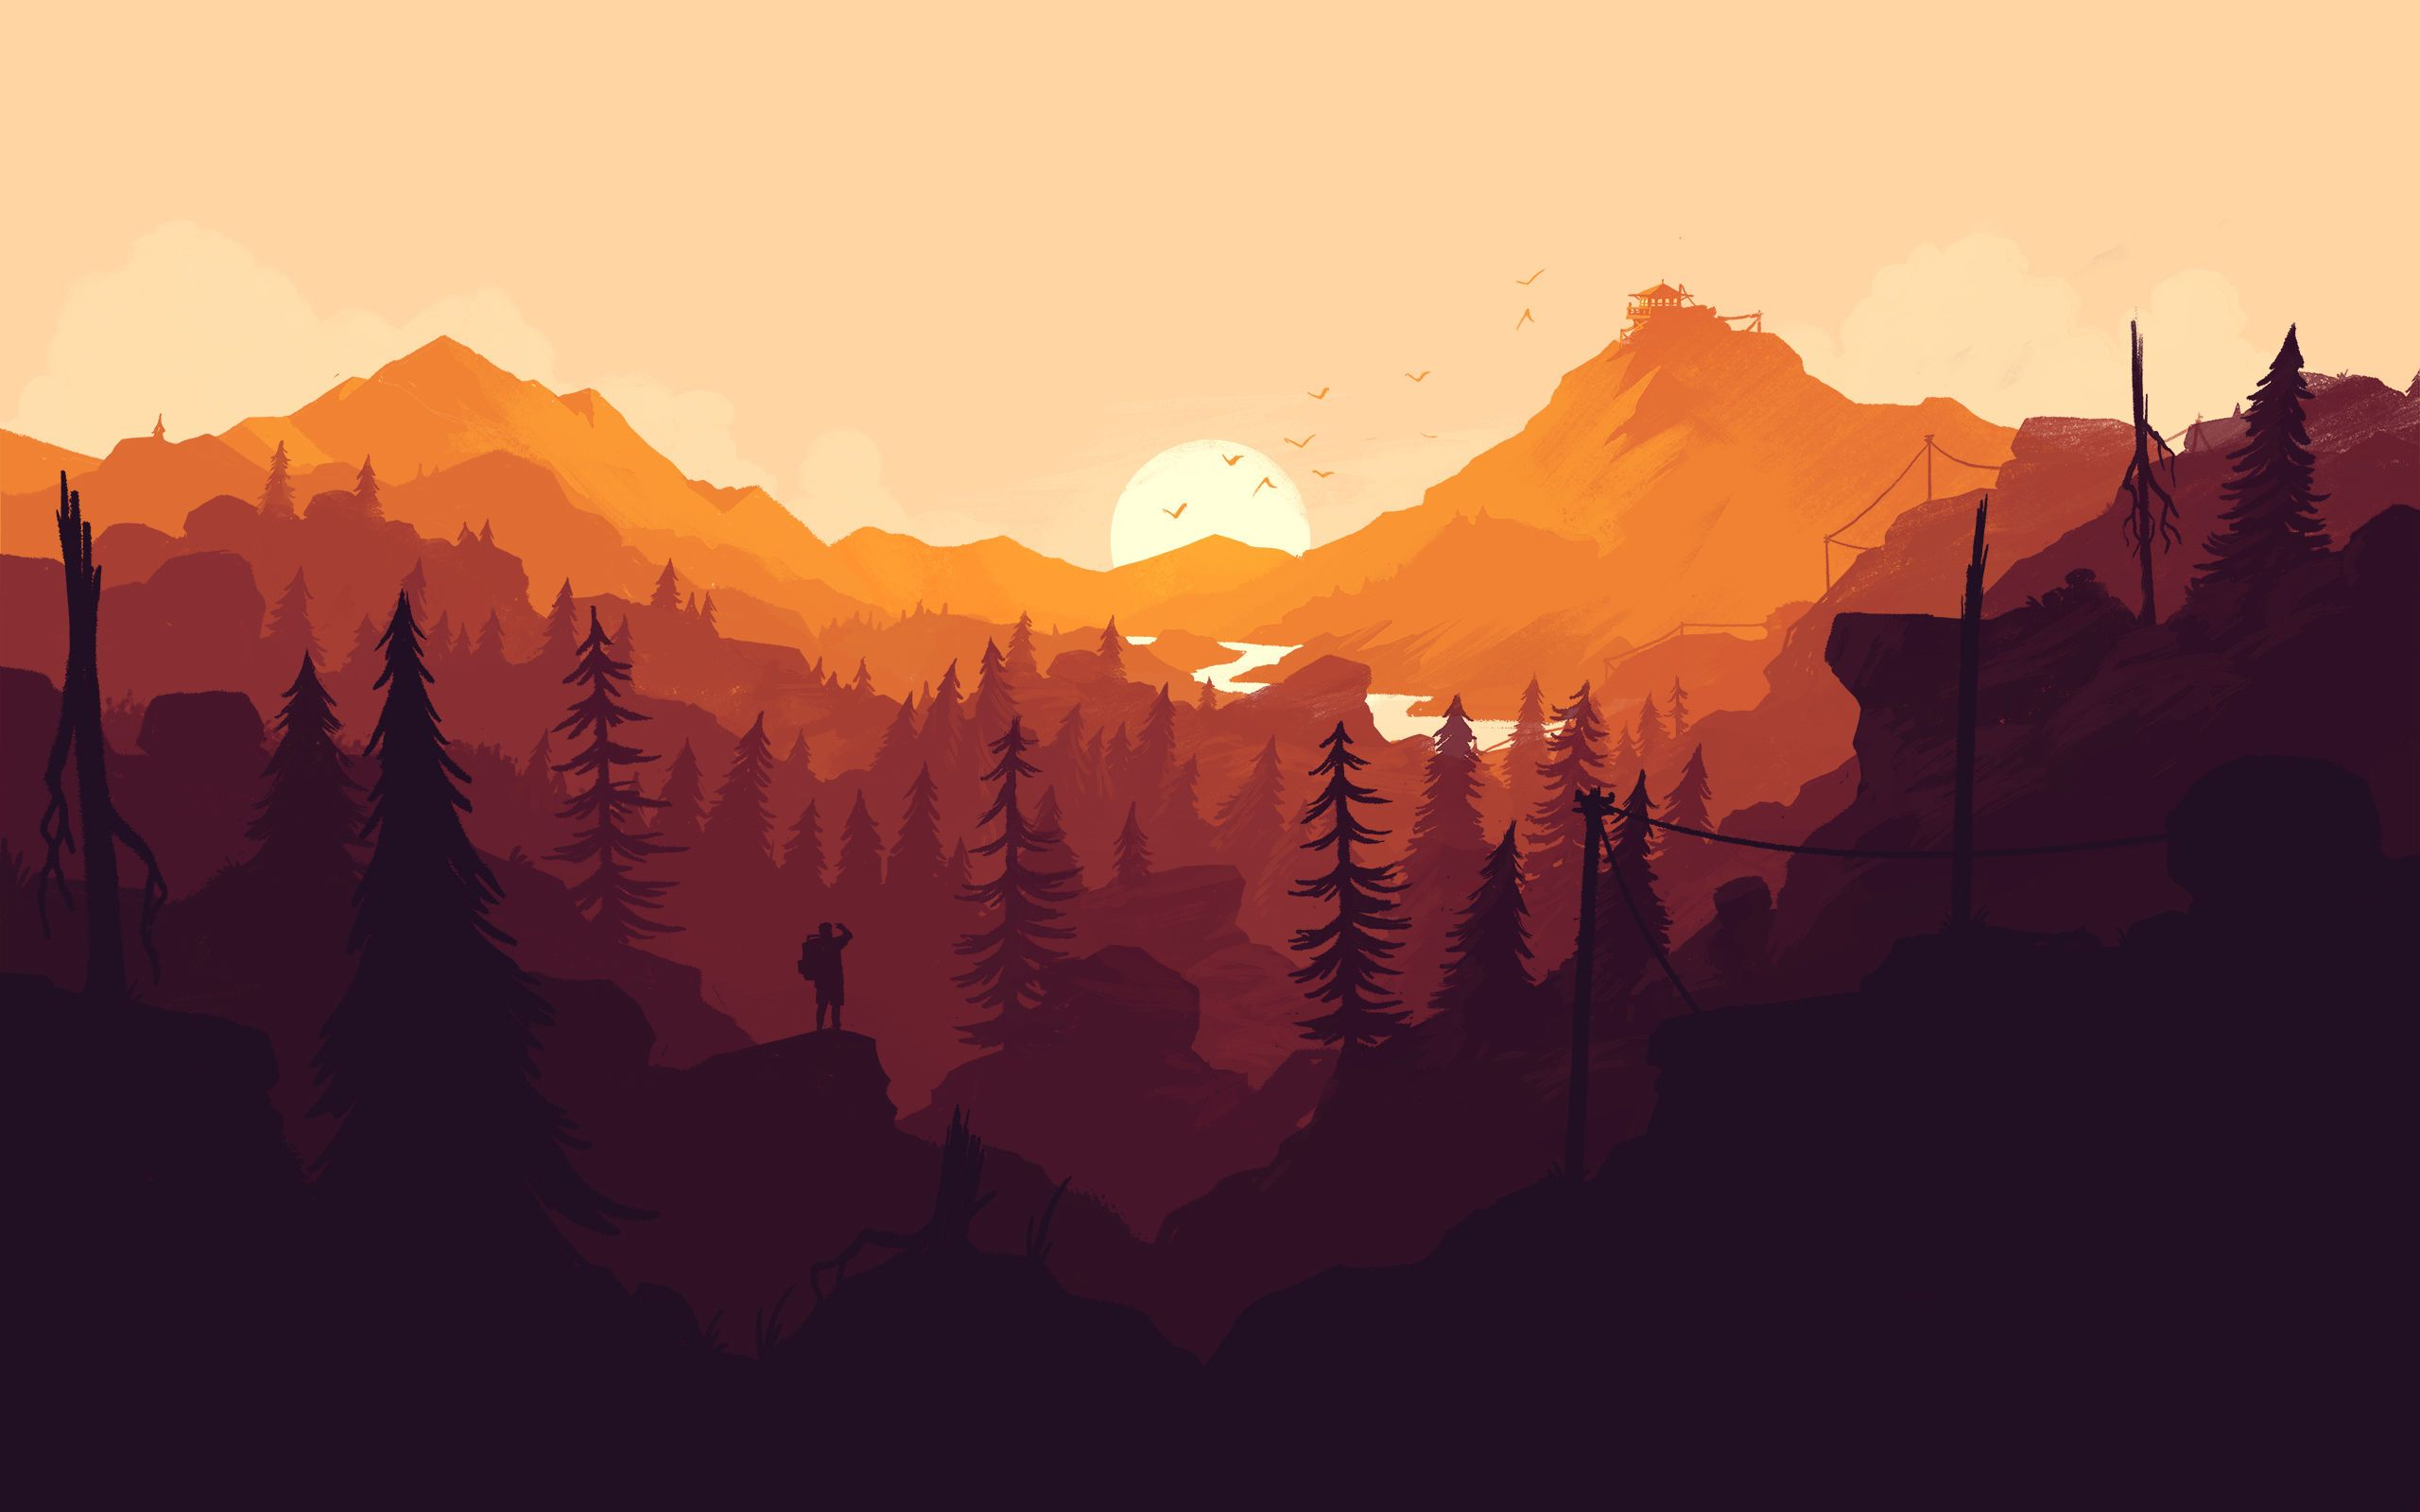 Firewatch Imgur Landscape Wallpaper Landscape Art Mountain Wallpaper